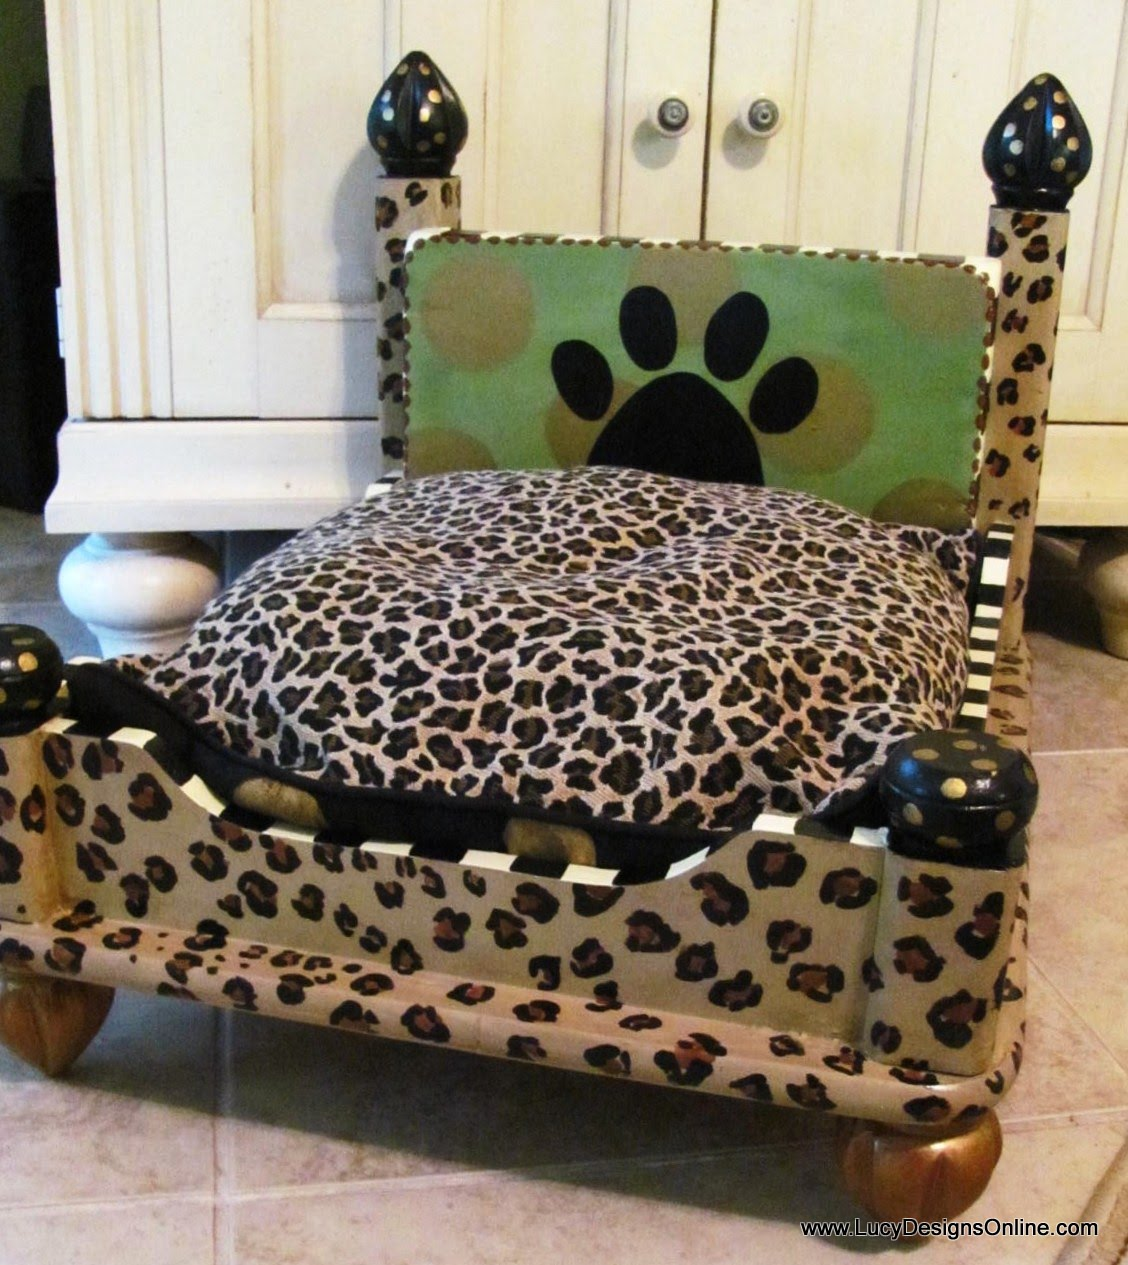 Dog Bed from an End Table - Leopard Print   Lucy Designs